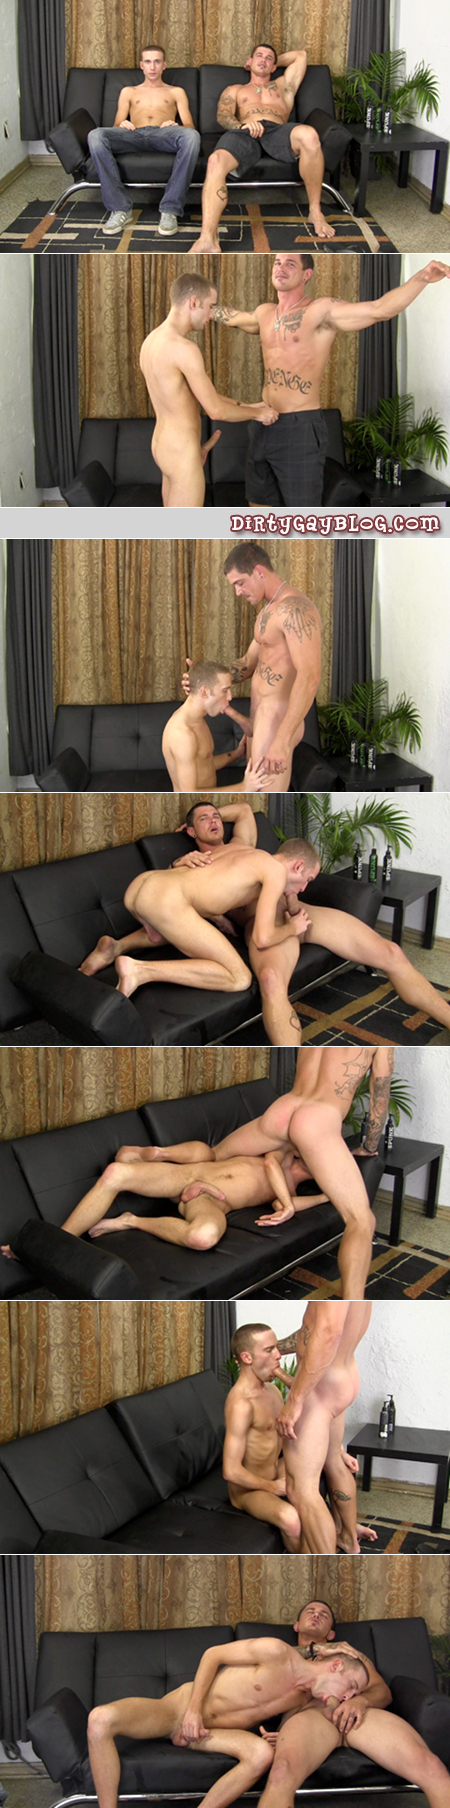 Gay-for-pay star Sebastian Young teaching a young twink how to swallow a huge dick.